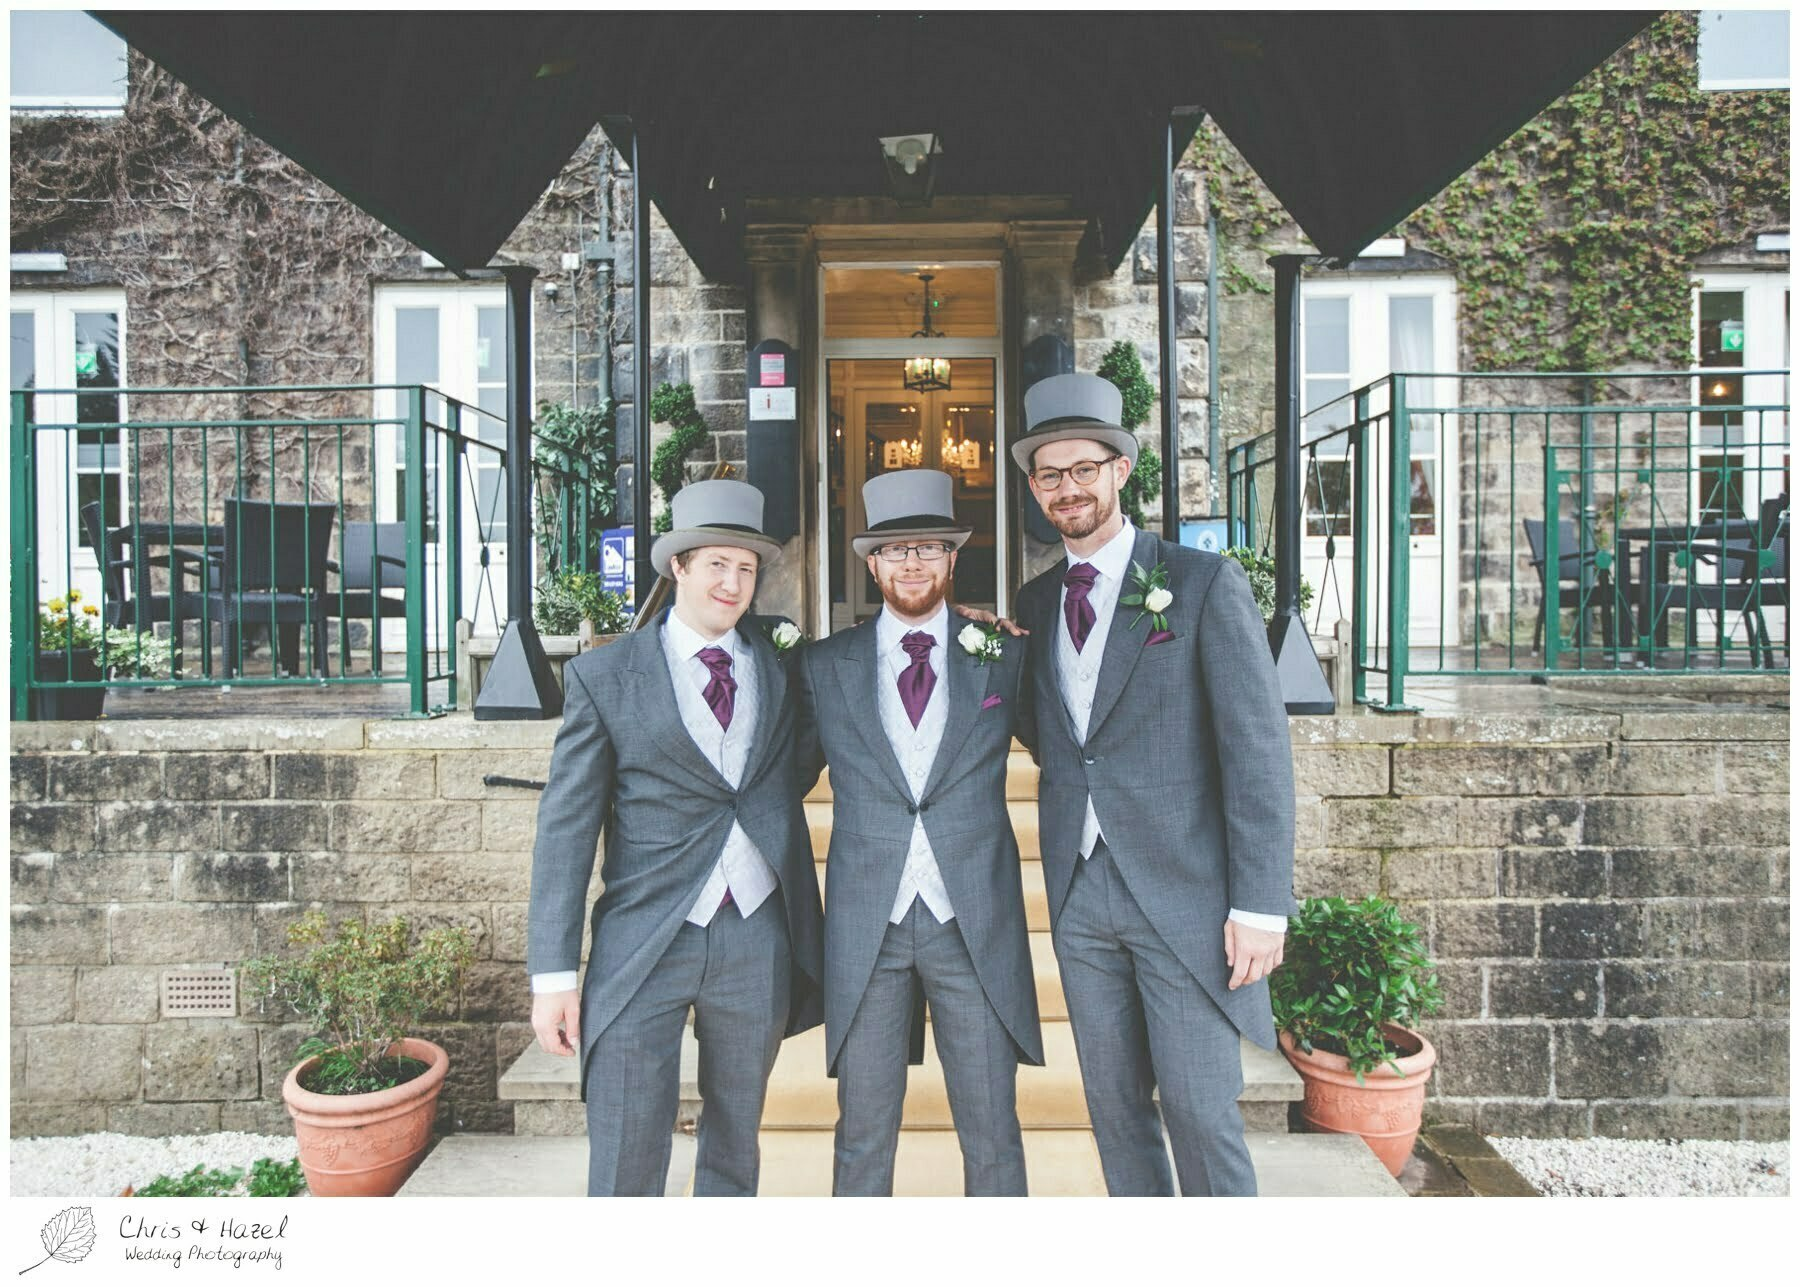 groom with ushers and best men outside wedding venue, Ilkley wedding photographer, Ilkley wedding photography, The Craiglands hotel wedding photography, west Yorkshire wedding photography, chris and hazel wedding photography, emily nunwick, sam nicholson, emily nicholson,